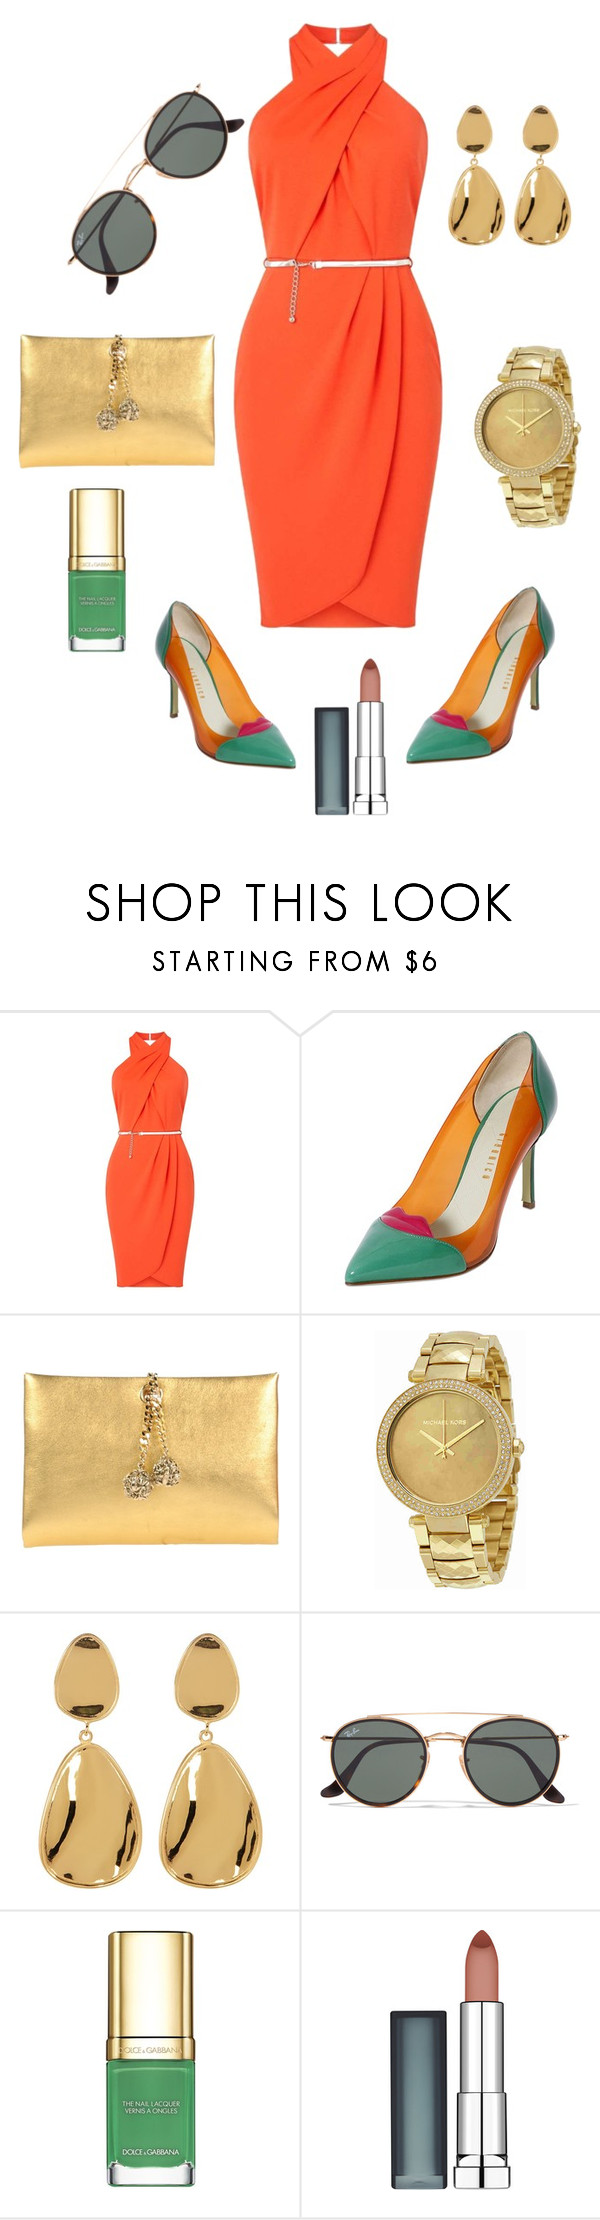 """Untitled #936"" by stylemirror ❤ liked on Polyvore featuring Miss Selfridge, Giannico, Roberto Cavalli, Michael Kors, Argento Vivo, Ray-Ban, Dolce&Gabbana and Maybelline"